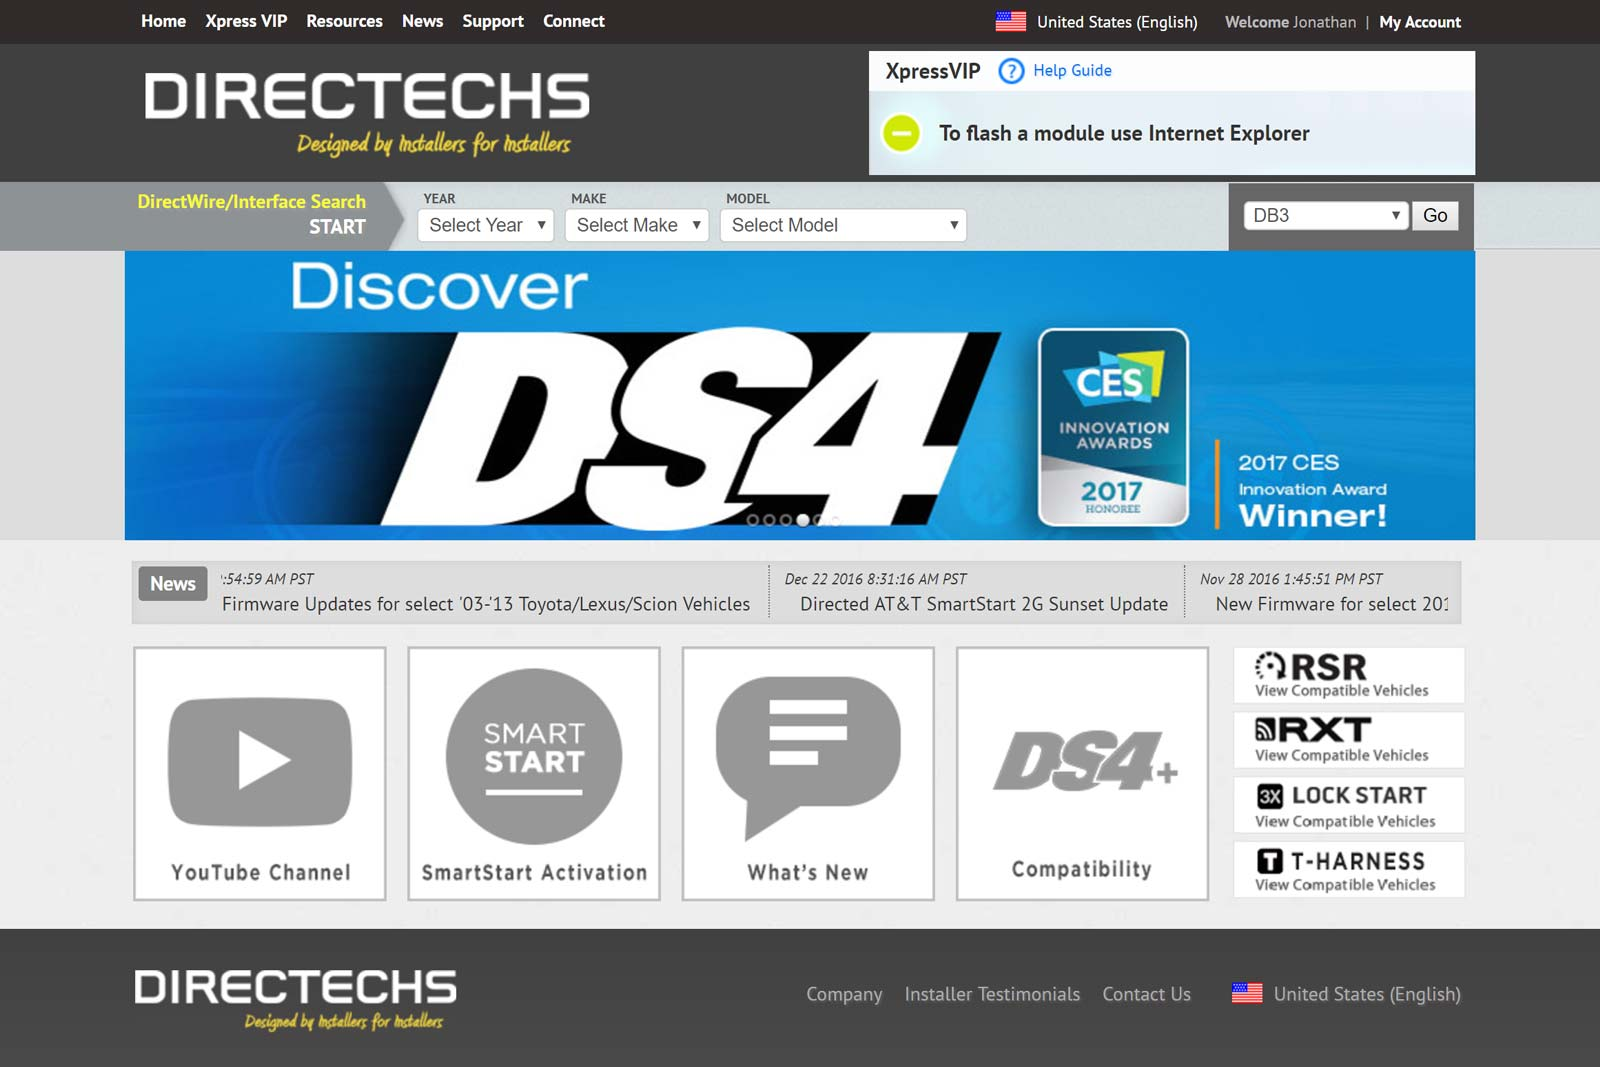 Directechs Home Page